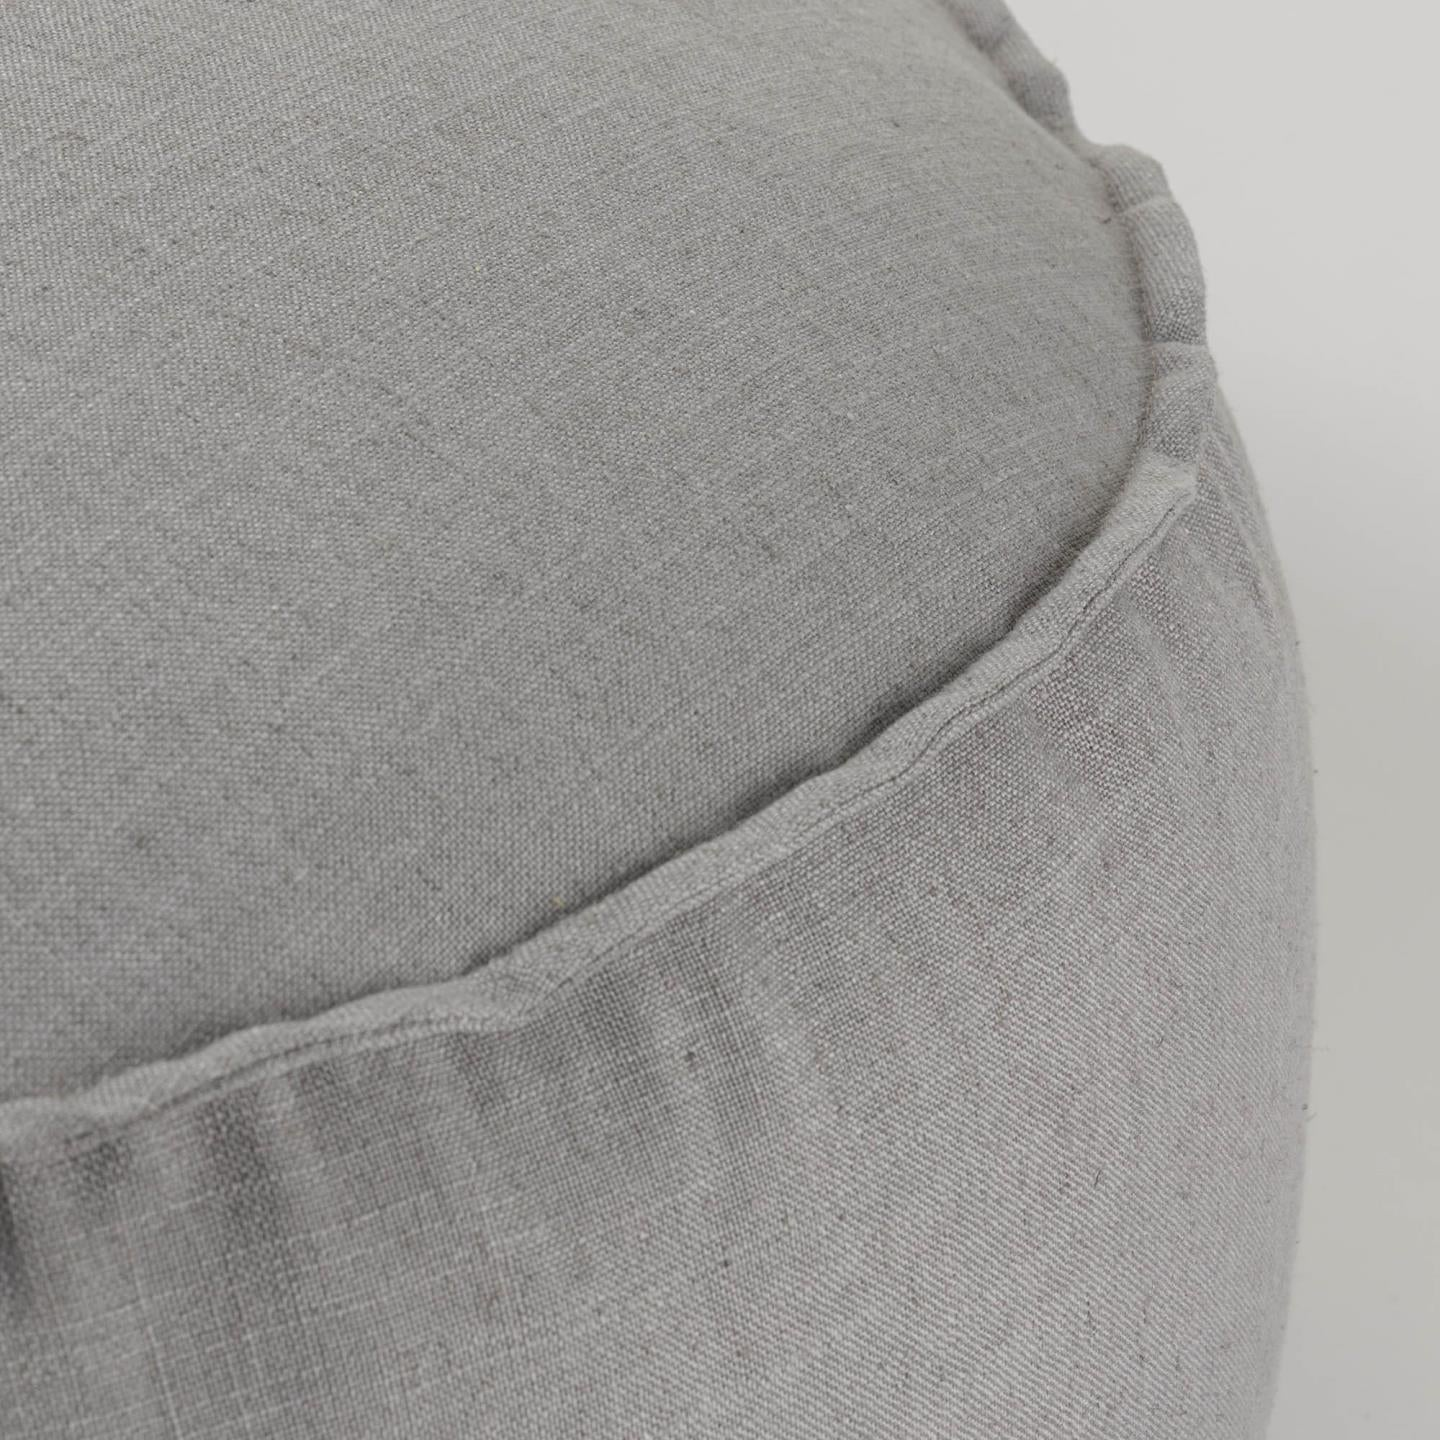 Mena Large Grey Pouf